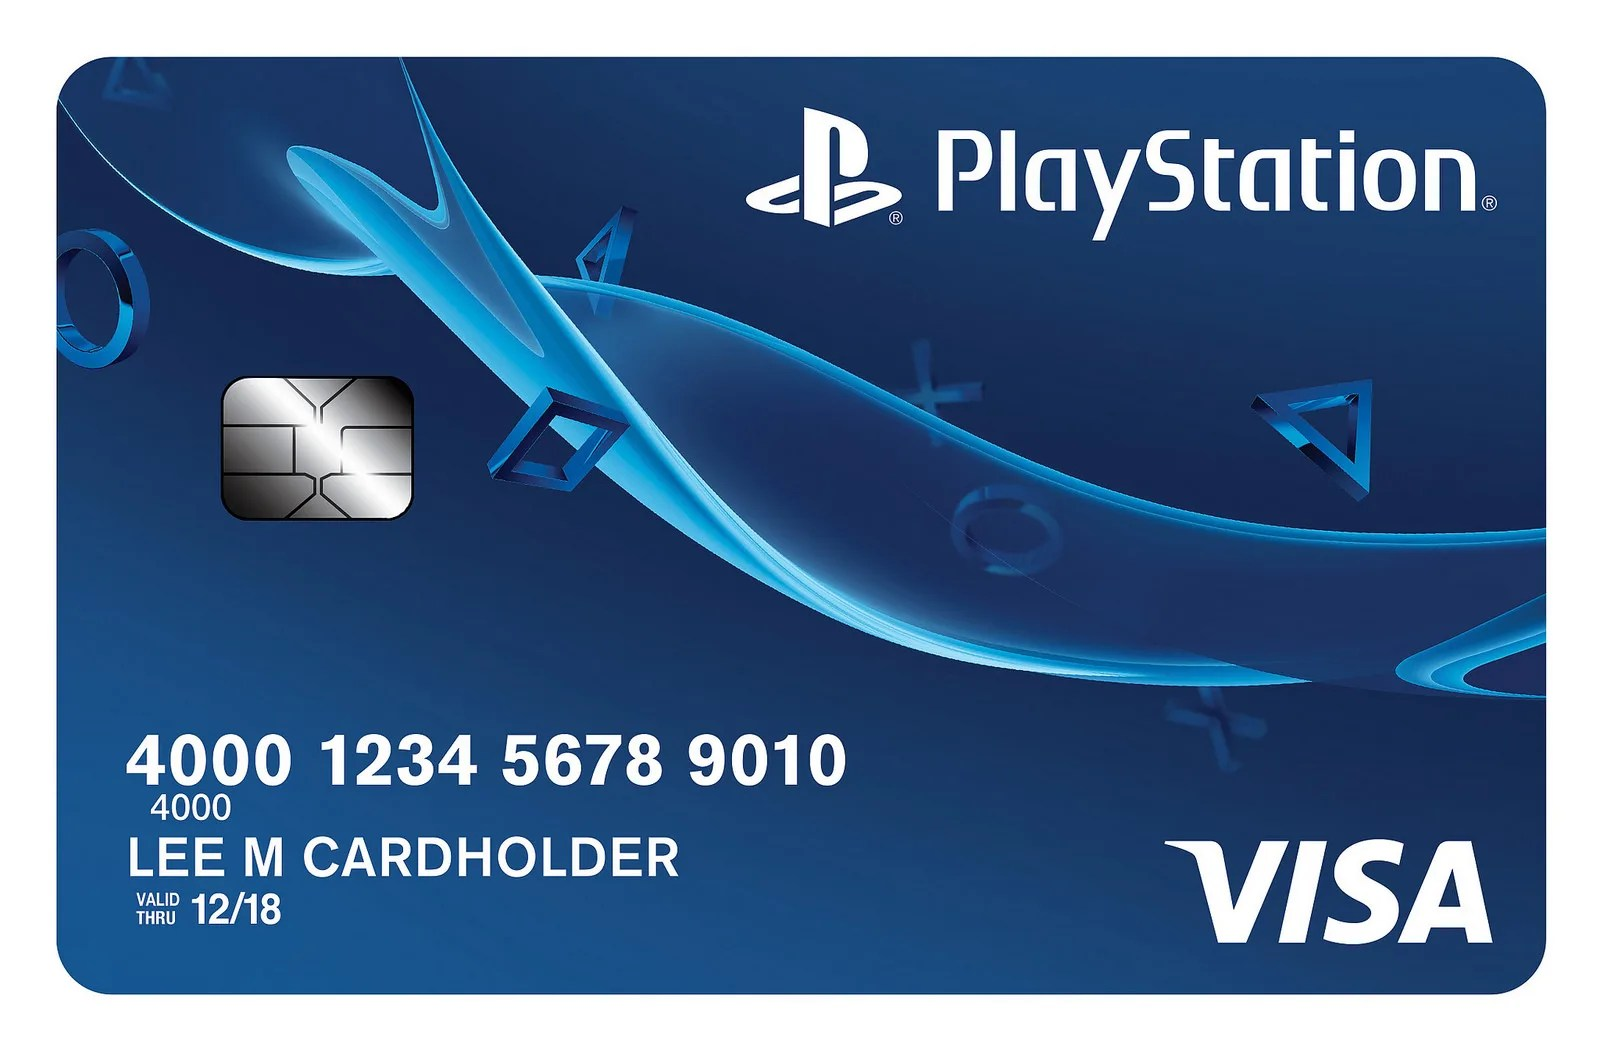 Ps Store Karte Introducing The New Playstation Credit Card Playstation Blog